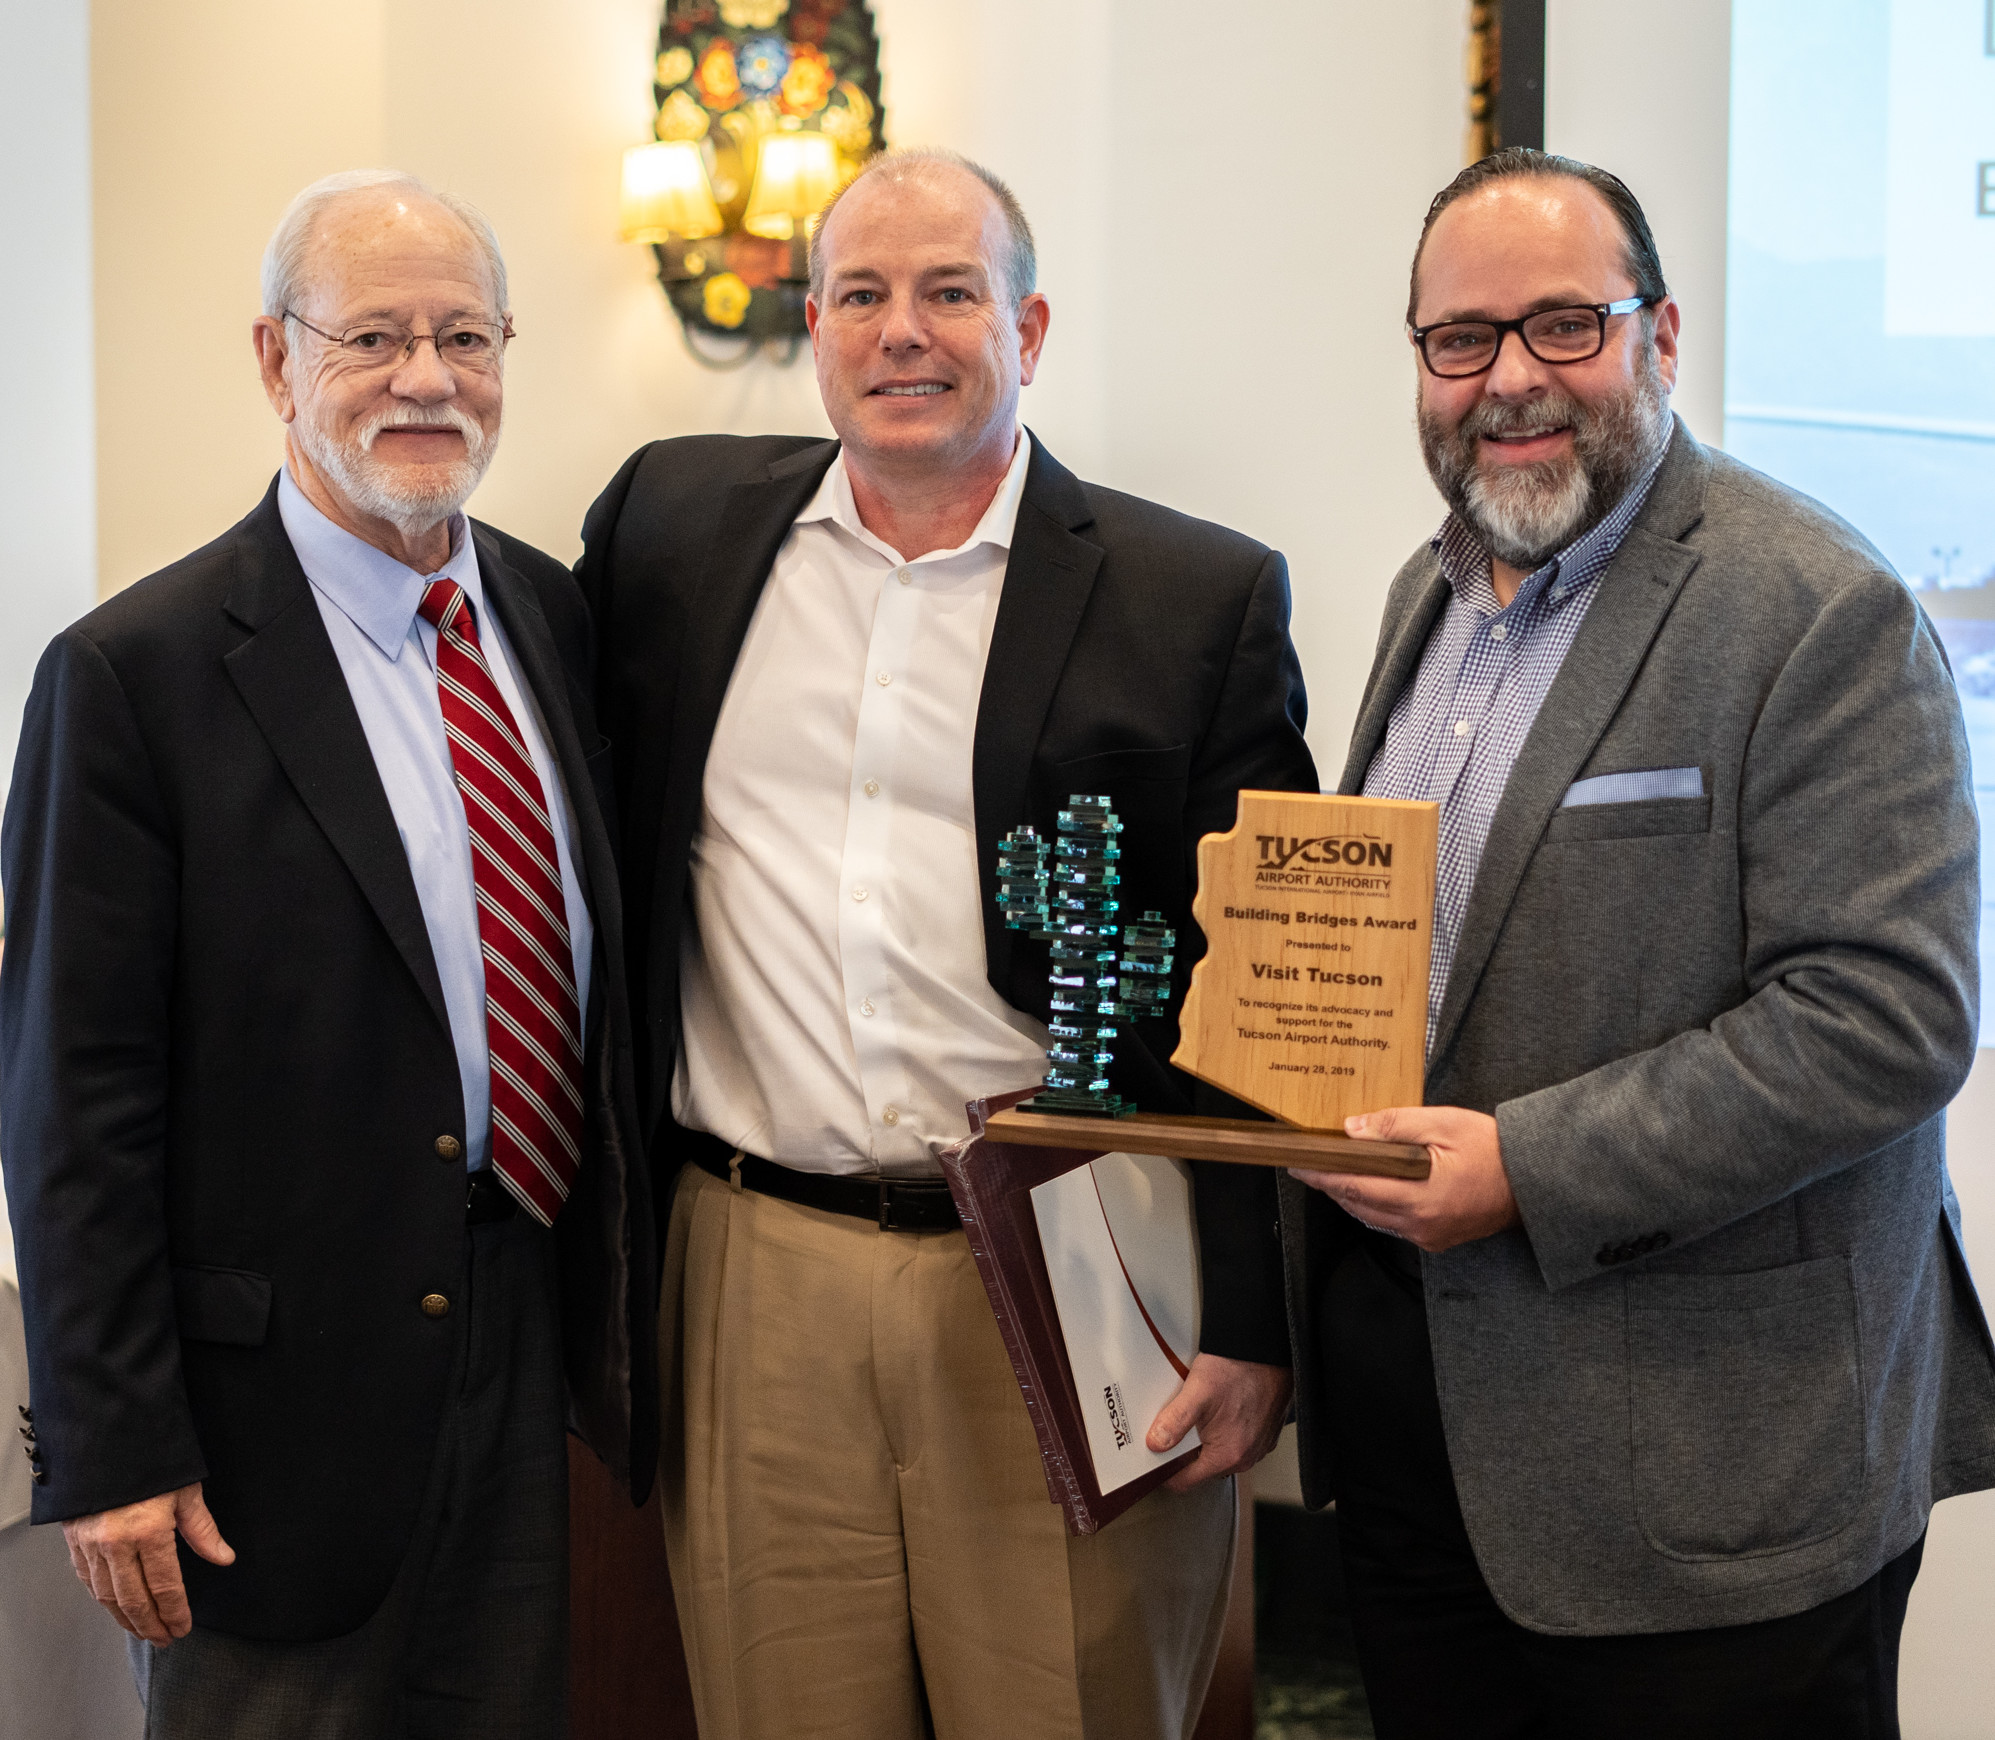 TAA Board Secretary Bruce Dusenberry, left, with Visit Tucson President and CEO Brent DeRaad and Executive Vice President Felipe Garcia receiving the Building Bridges Award.